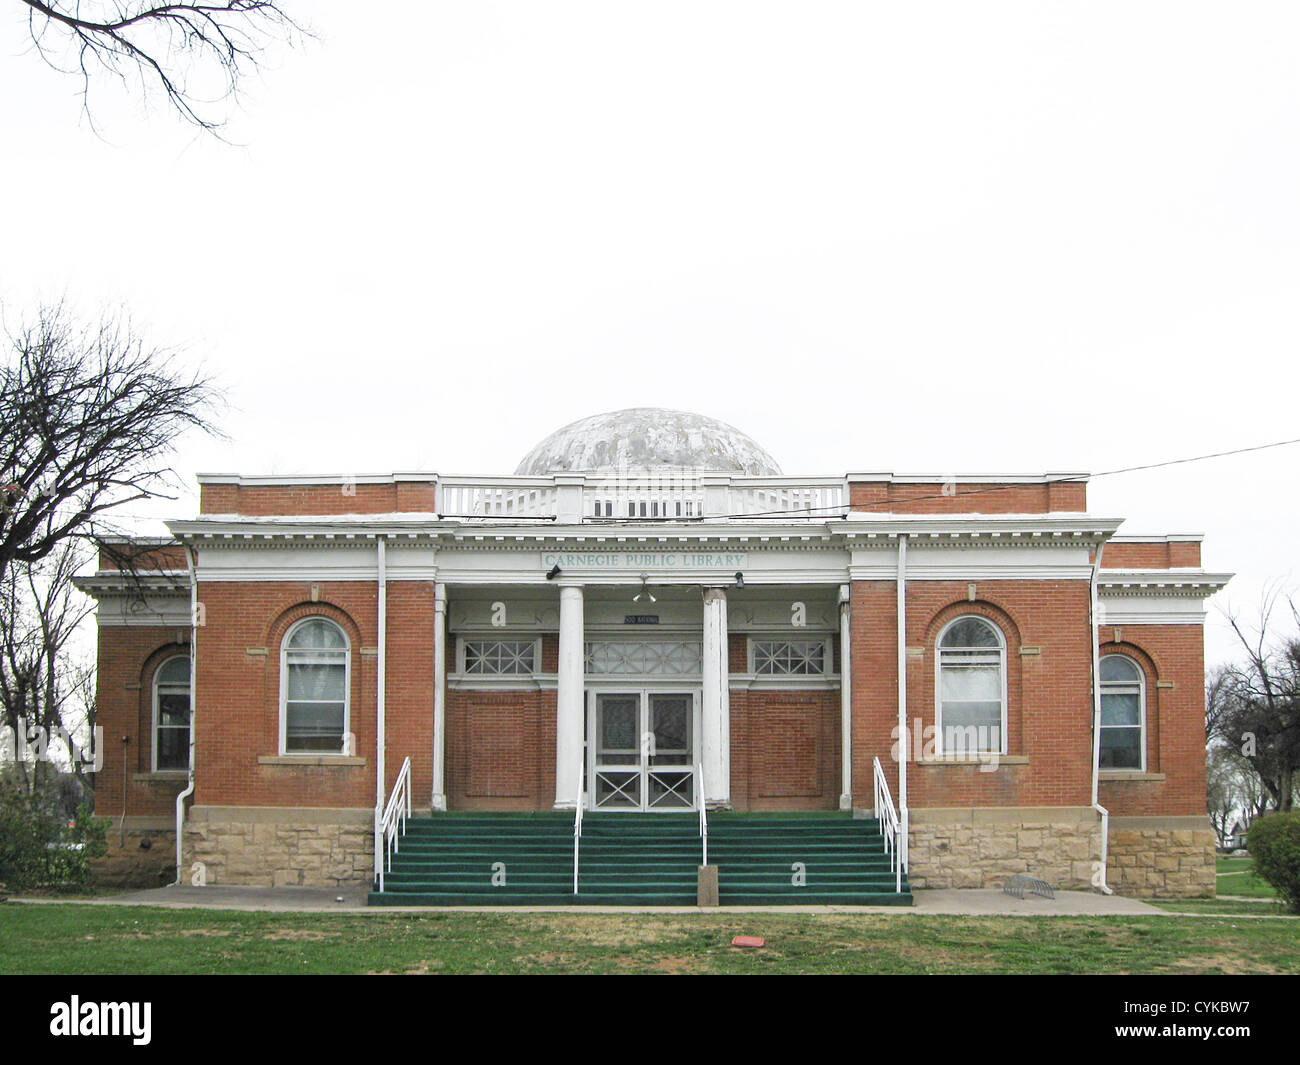 Carnegie Public Library, located at 500 National Avenue in Las Vegas, New Mexico. - Stock Image